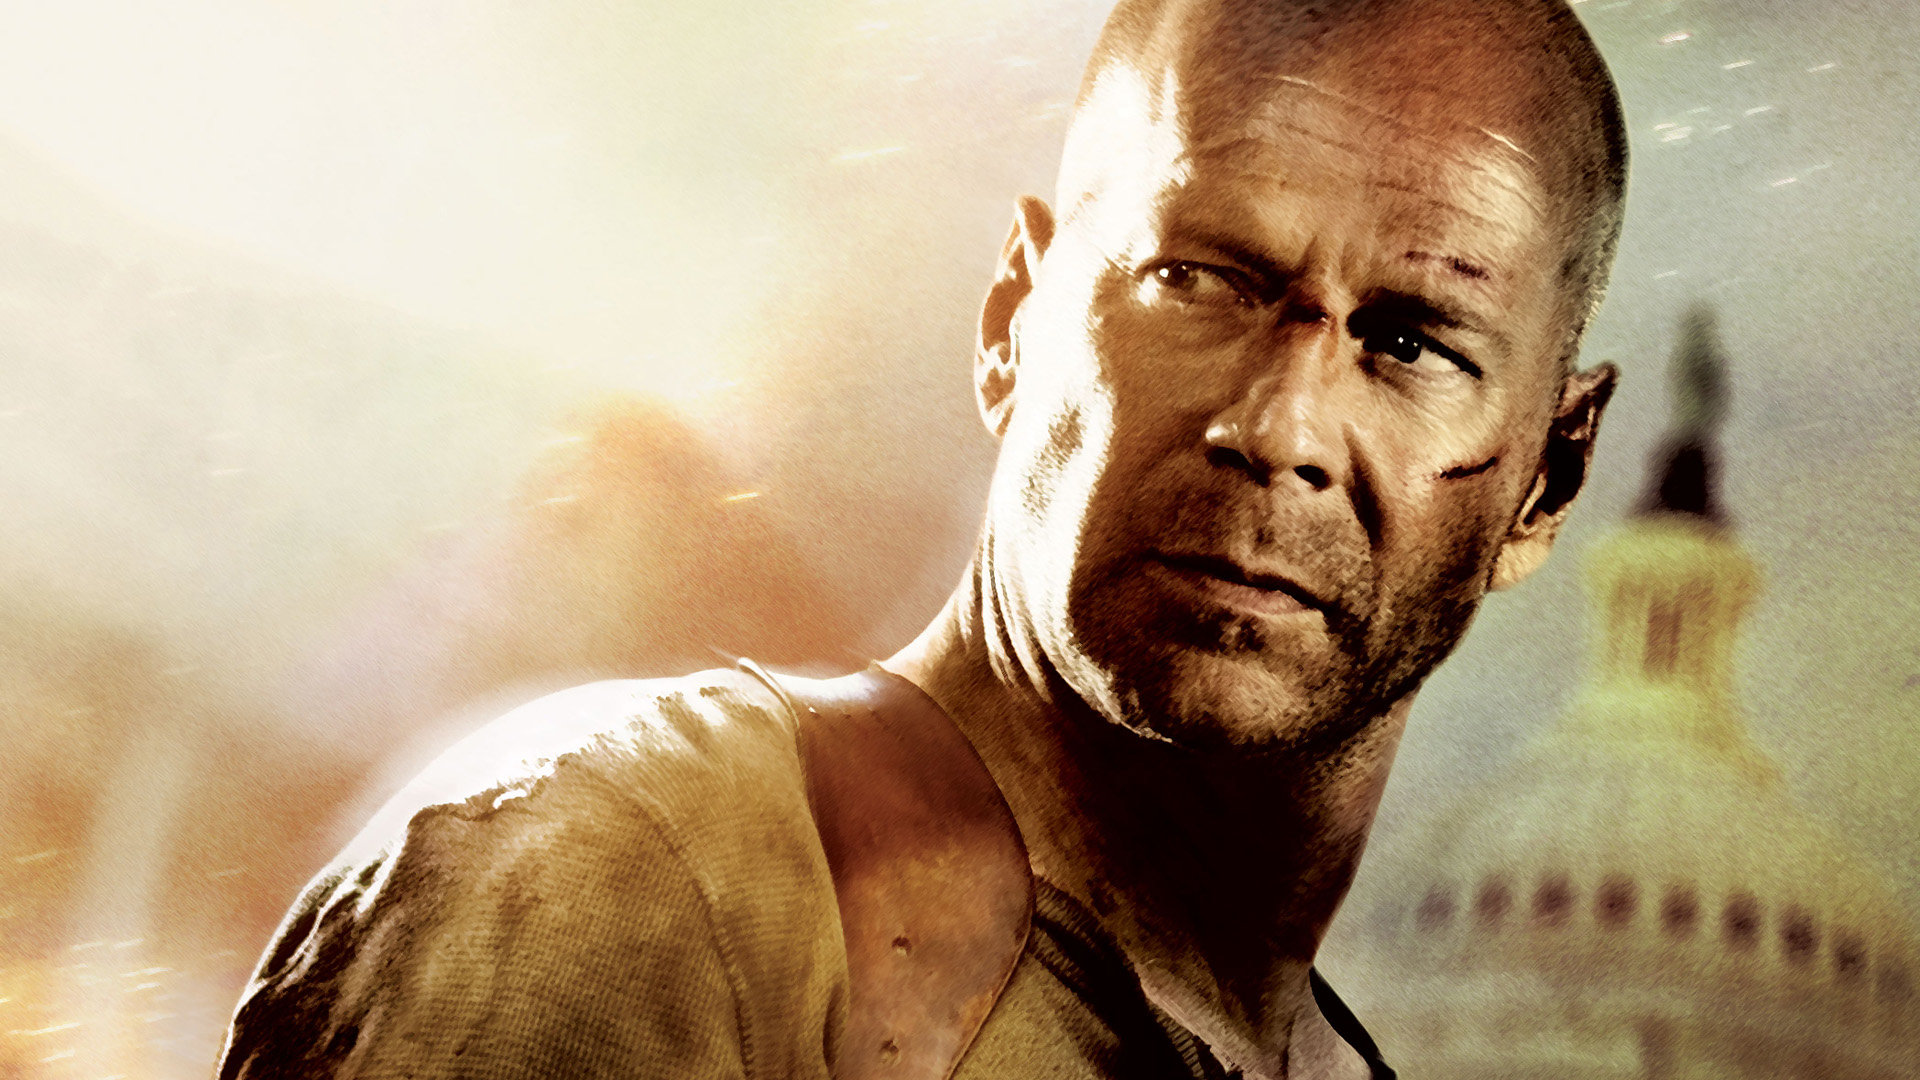 Download full hd 1080p Bruce Willis desktop background ID:316237 for free